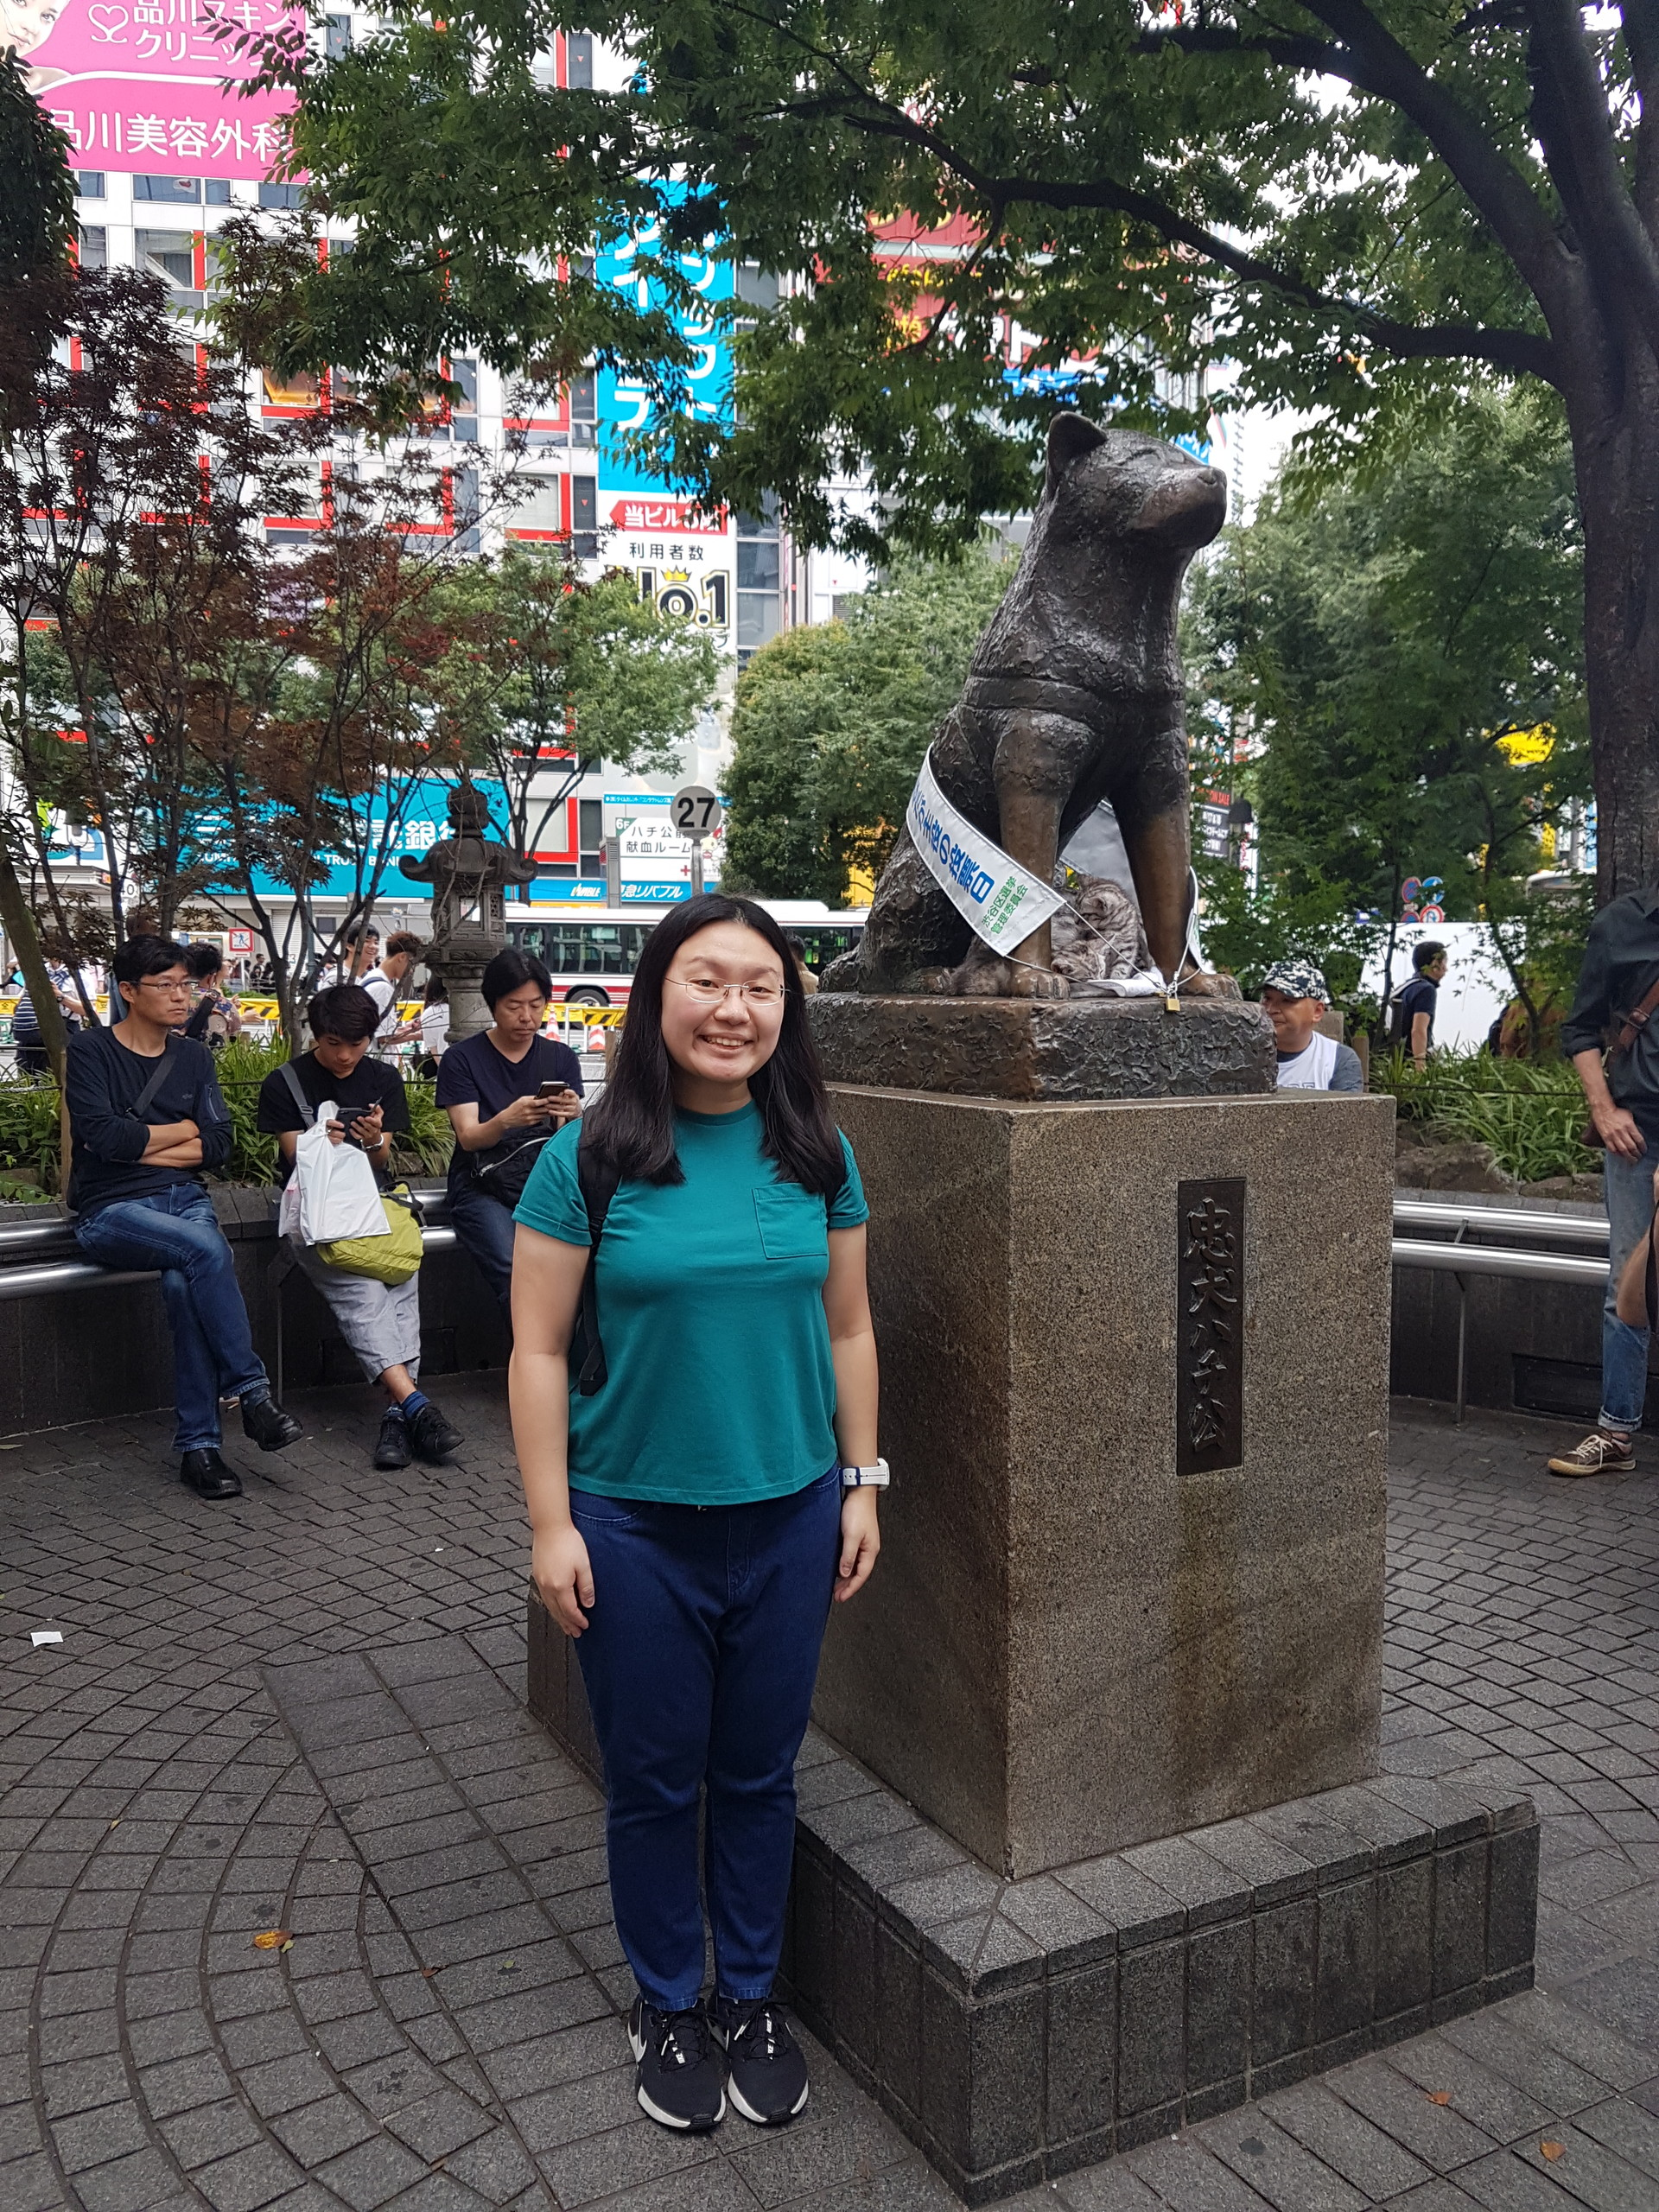 paying-homage-hachiko-d3221a4954660a9726